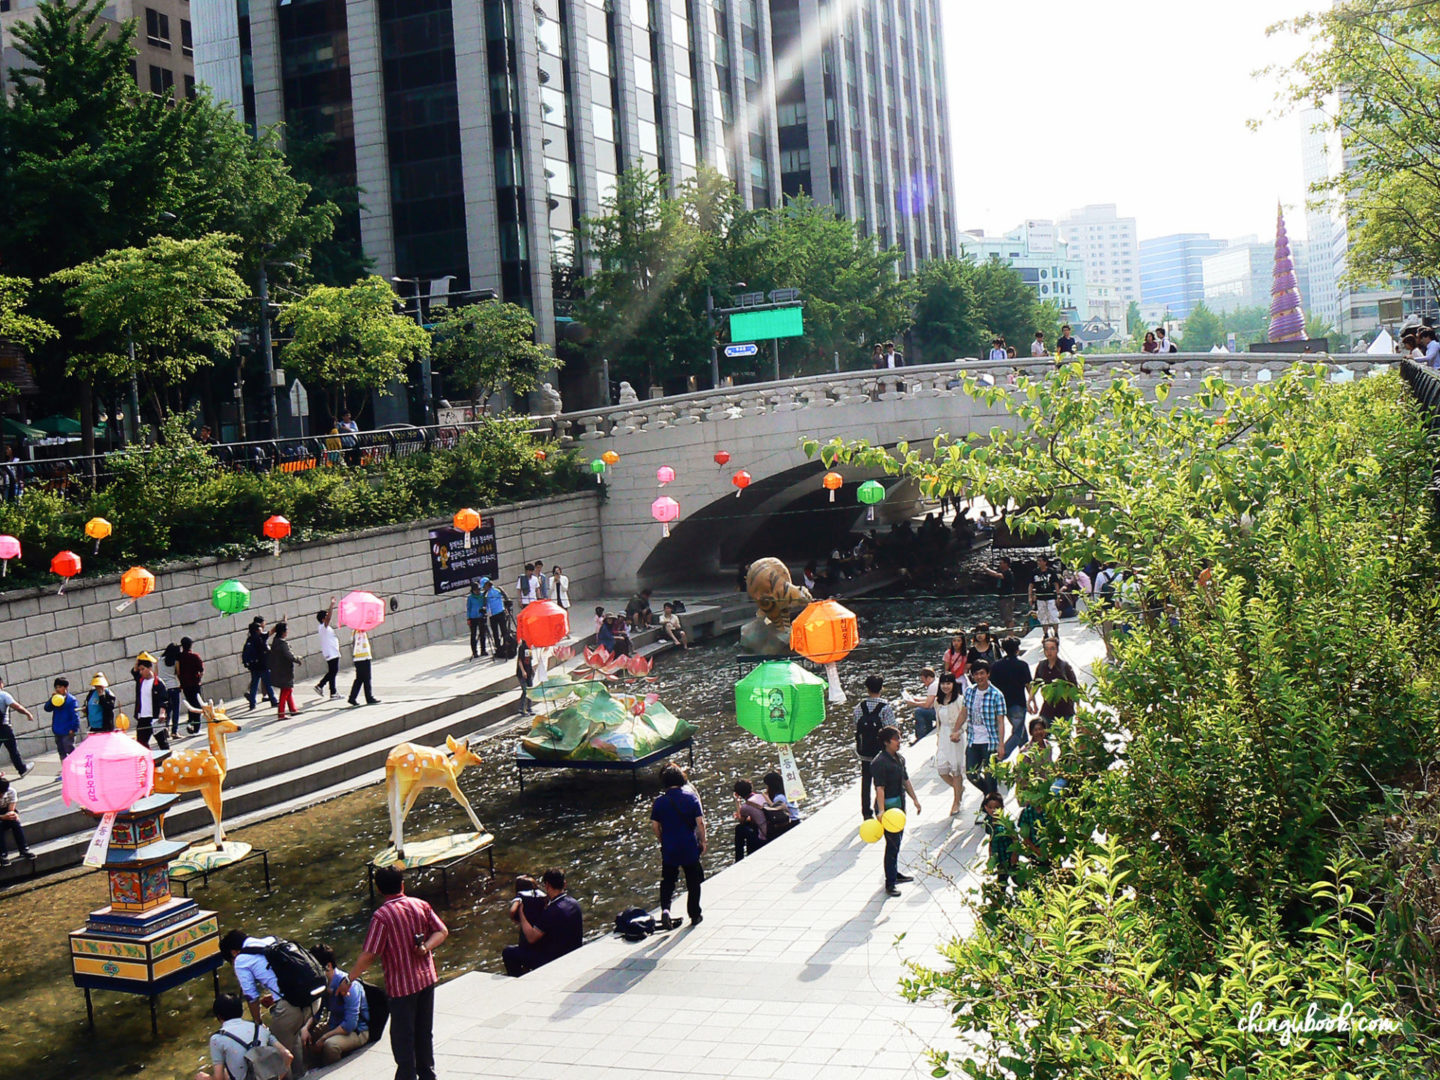 Cheonggyecheon printemps